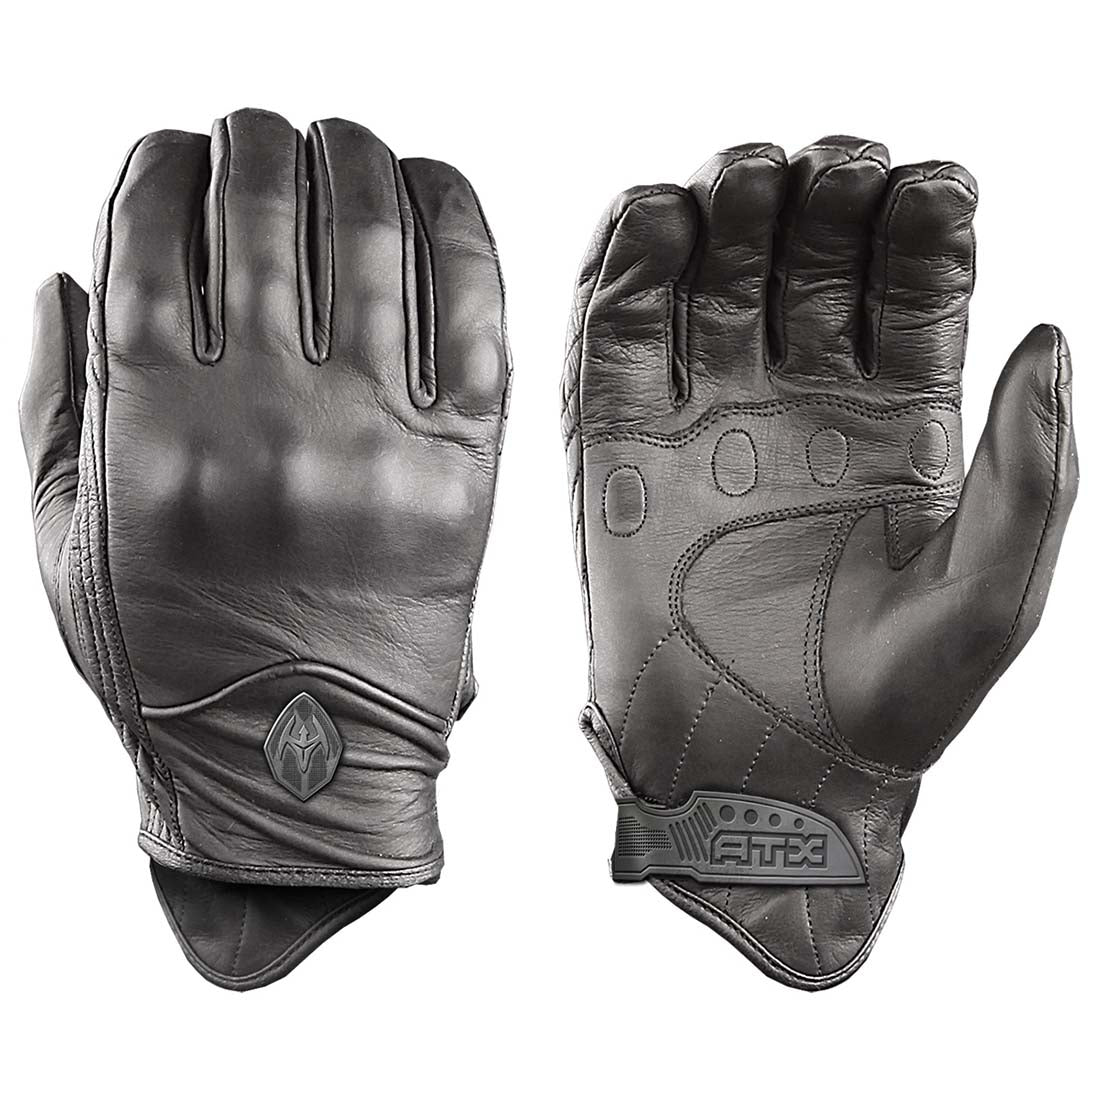 Damascus Gear All-Leather Gloves with Knuckle Armor